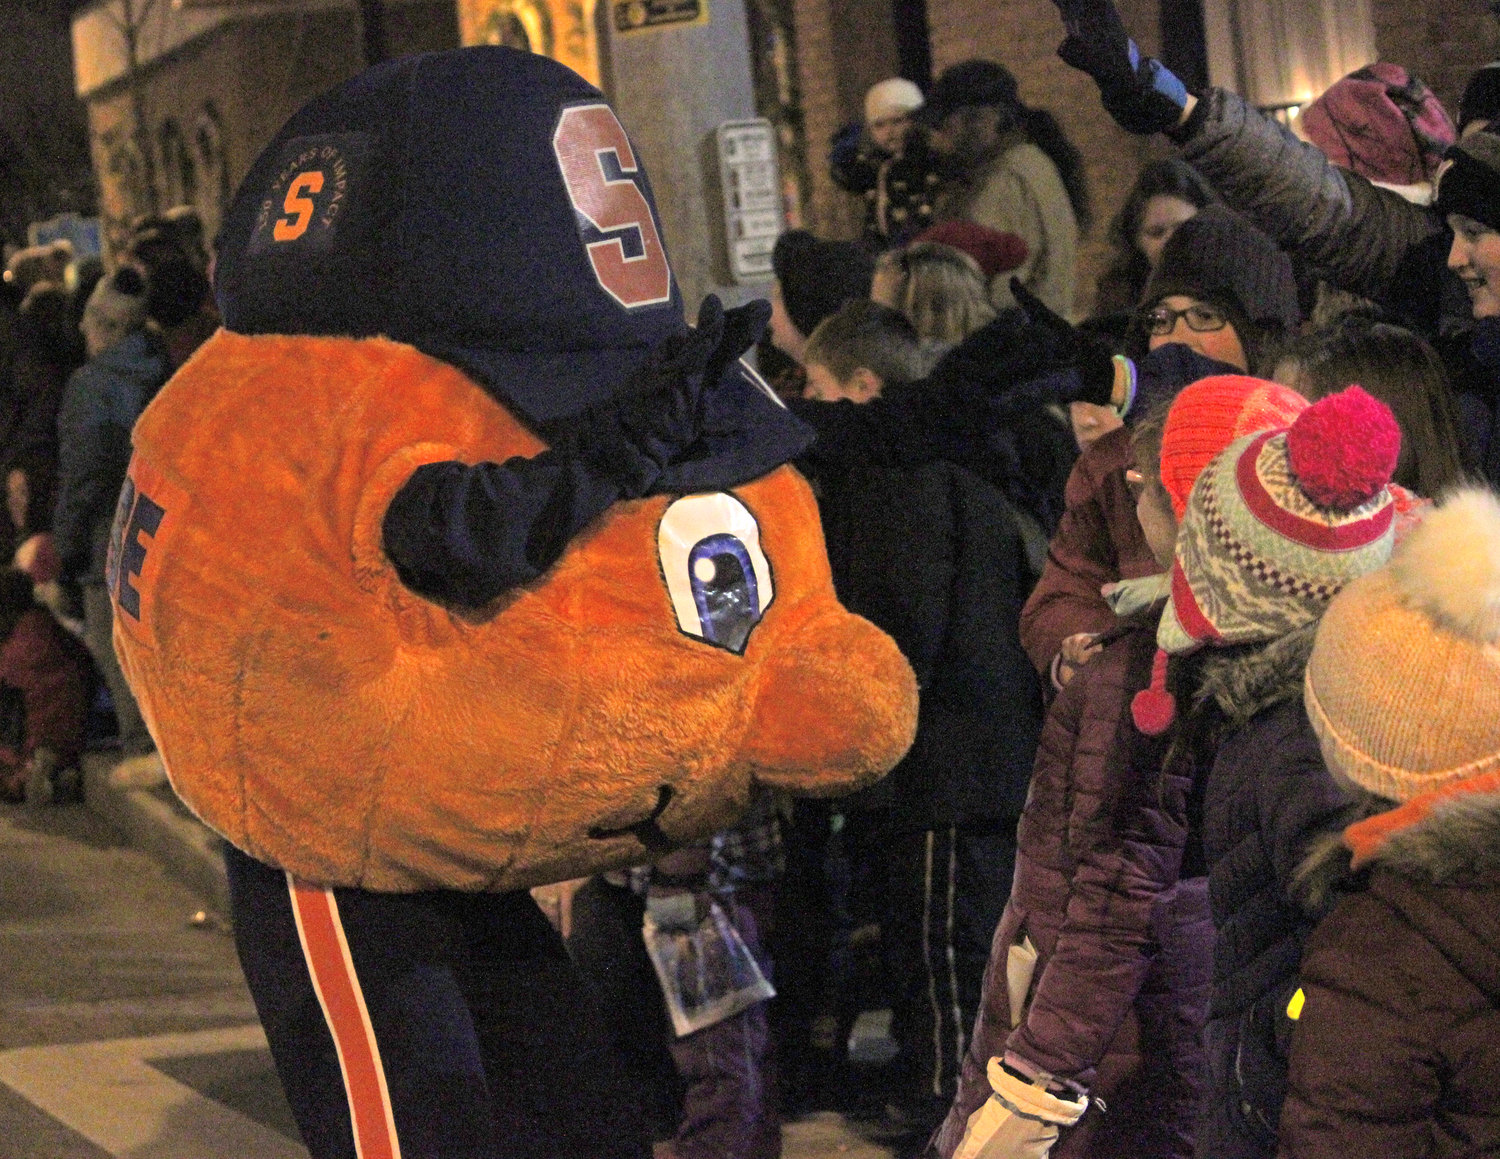 SYRACUSE ORANGE — Otto the Orange joins in to welcome the season of giving for the second annual Canastota Parade of Lights on Saturday, Nov. 30.